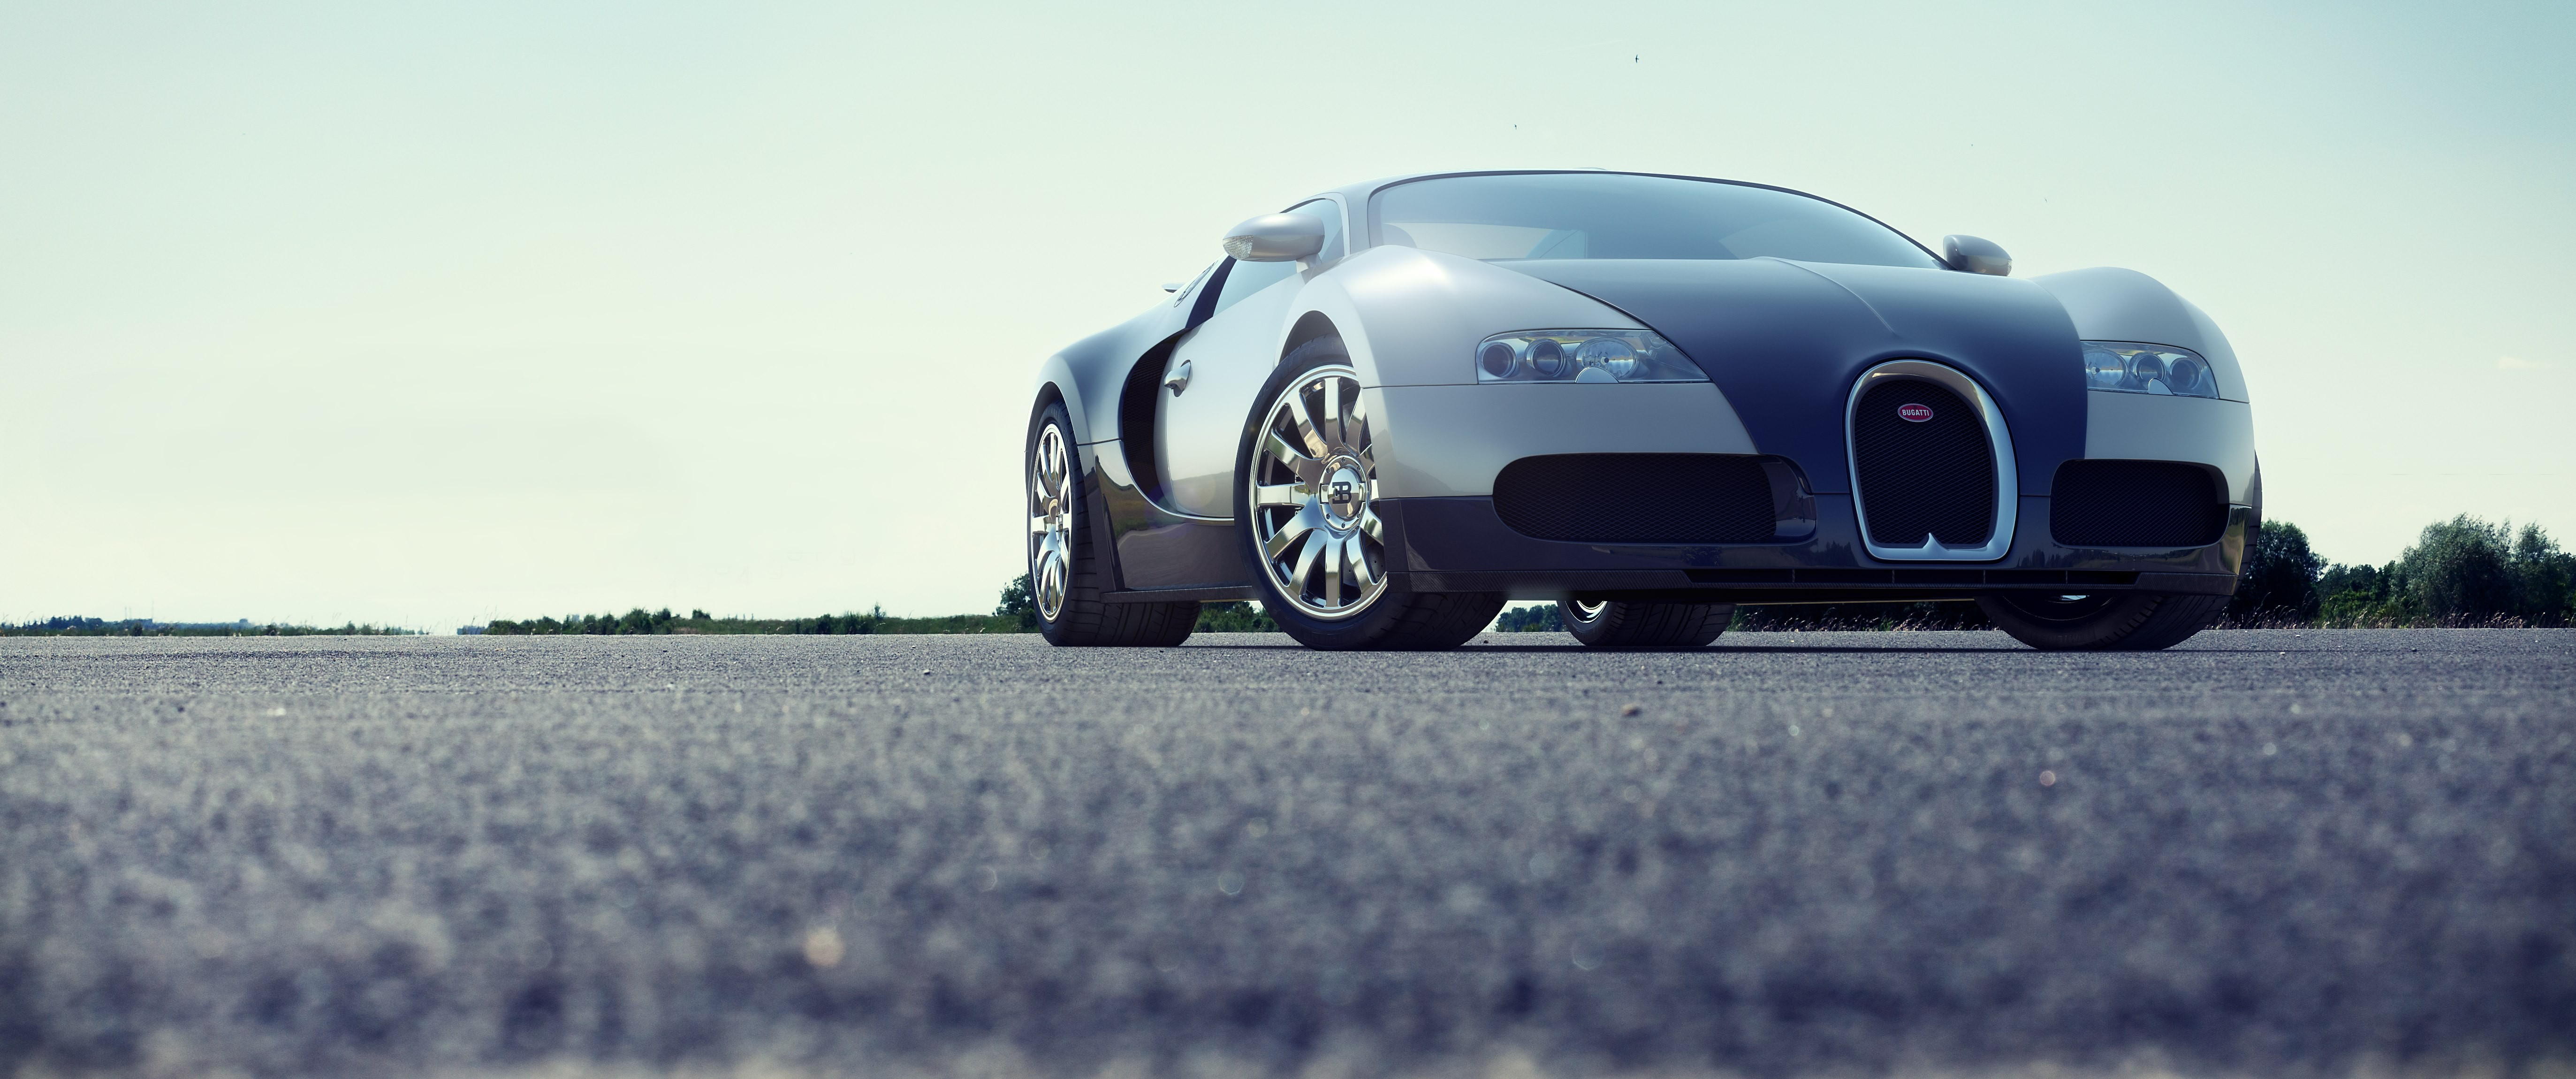 Bugatti Veyron Full Hd Hd Cars 4k Wallpapers Images Backgrounds